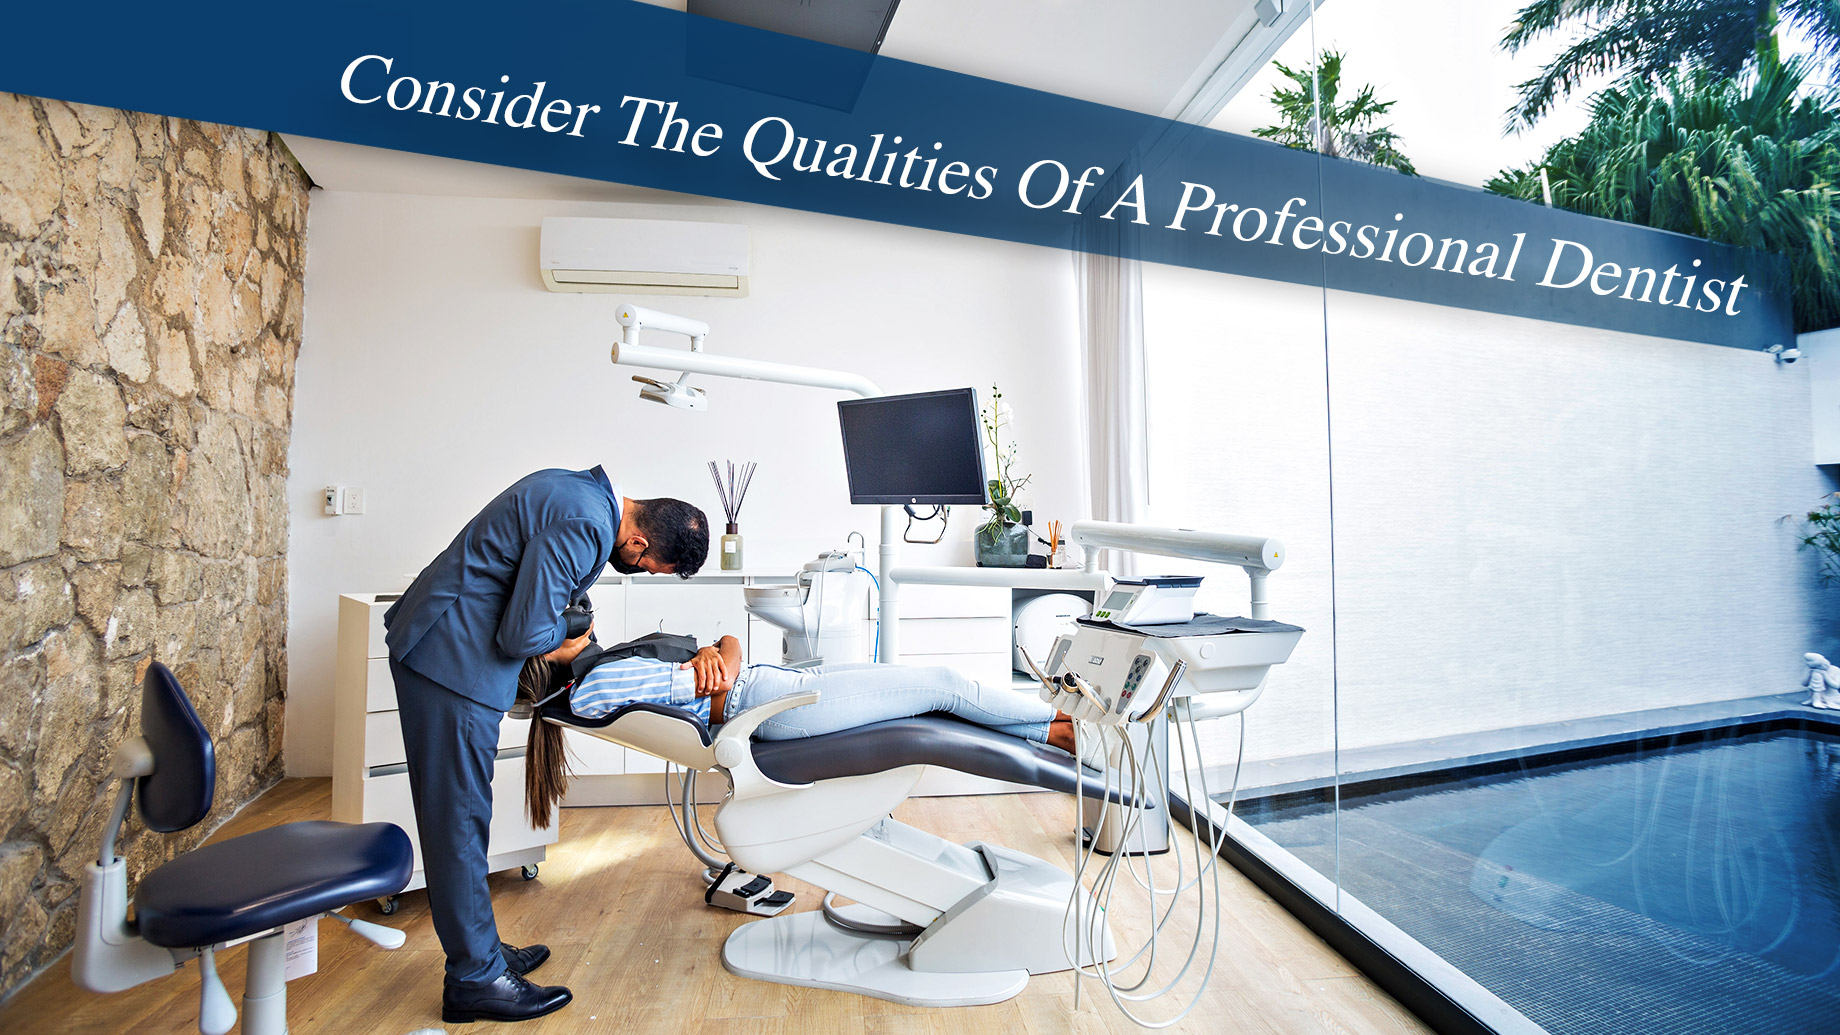 Consider The Qualities Of A Professional Dentist